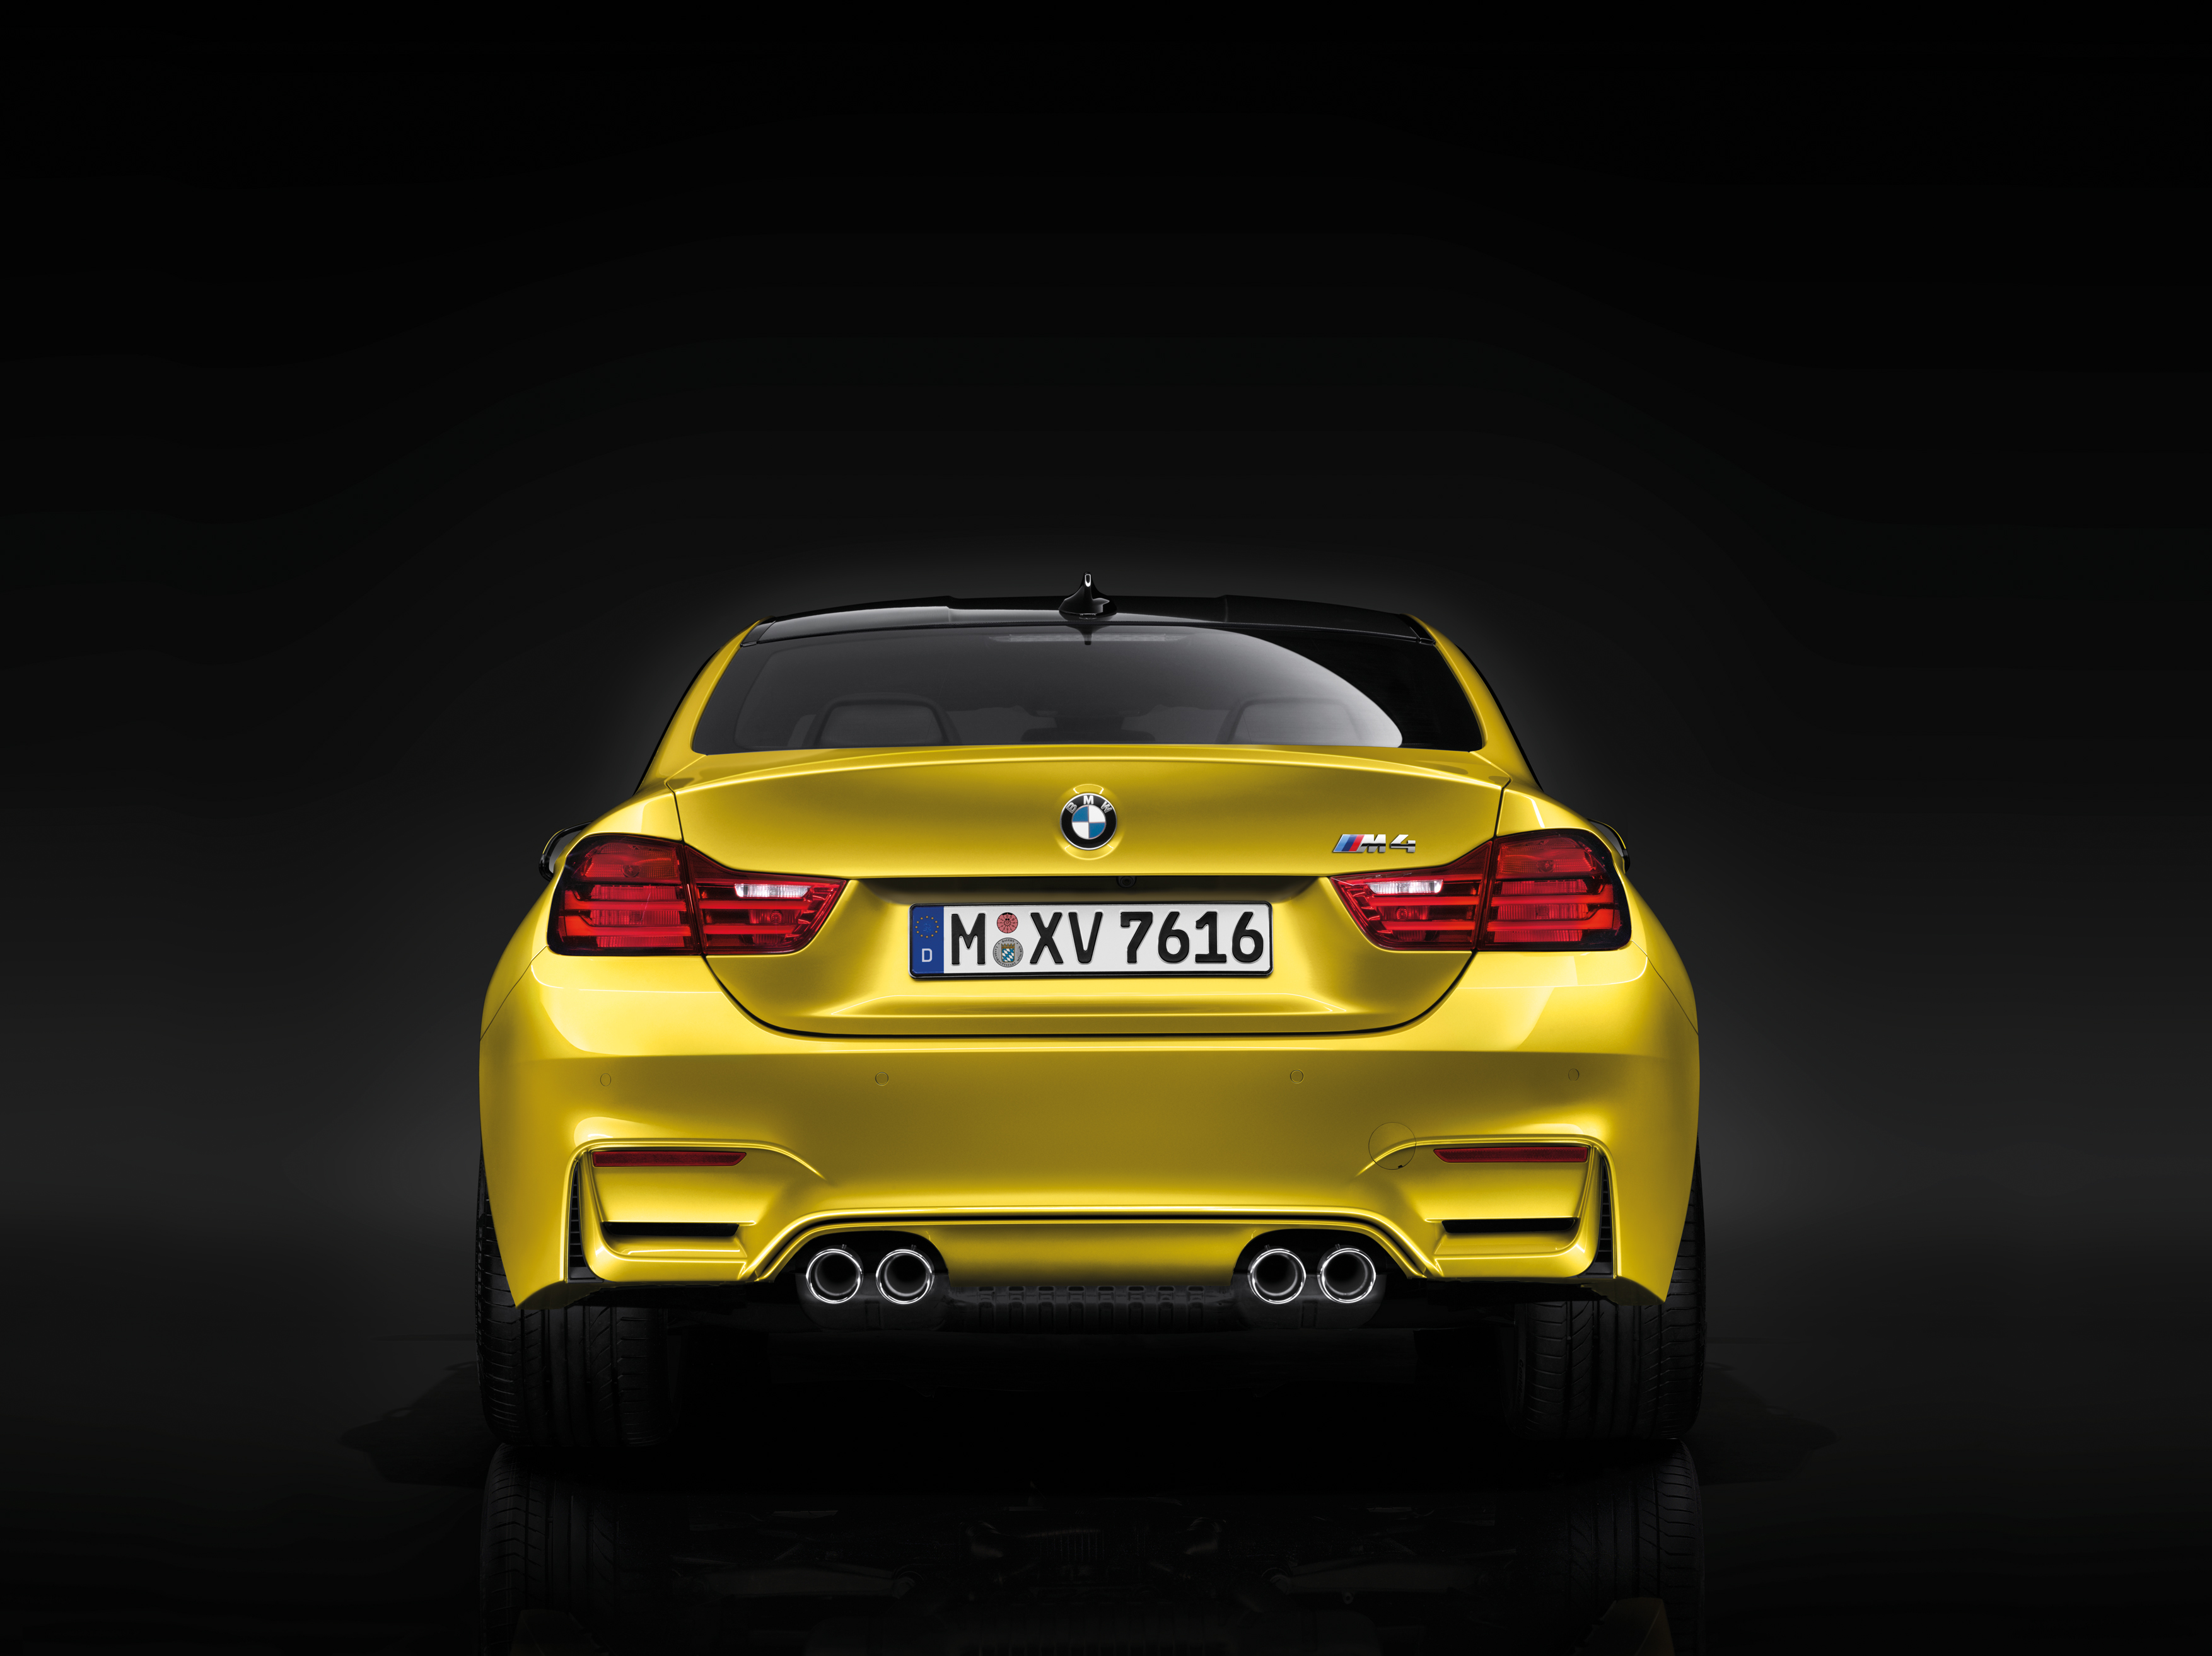 2015 BMW M4 Coupe Stills - (3) - SMADEMEDIA.COM Galleria